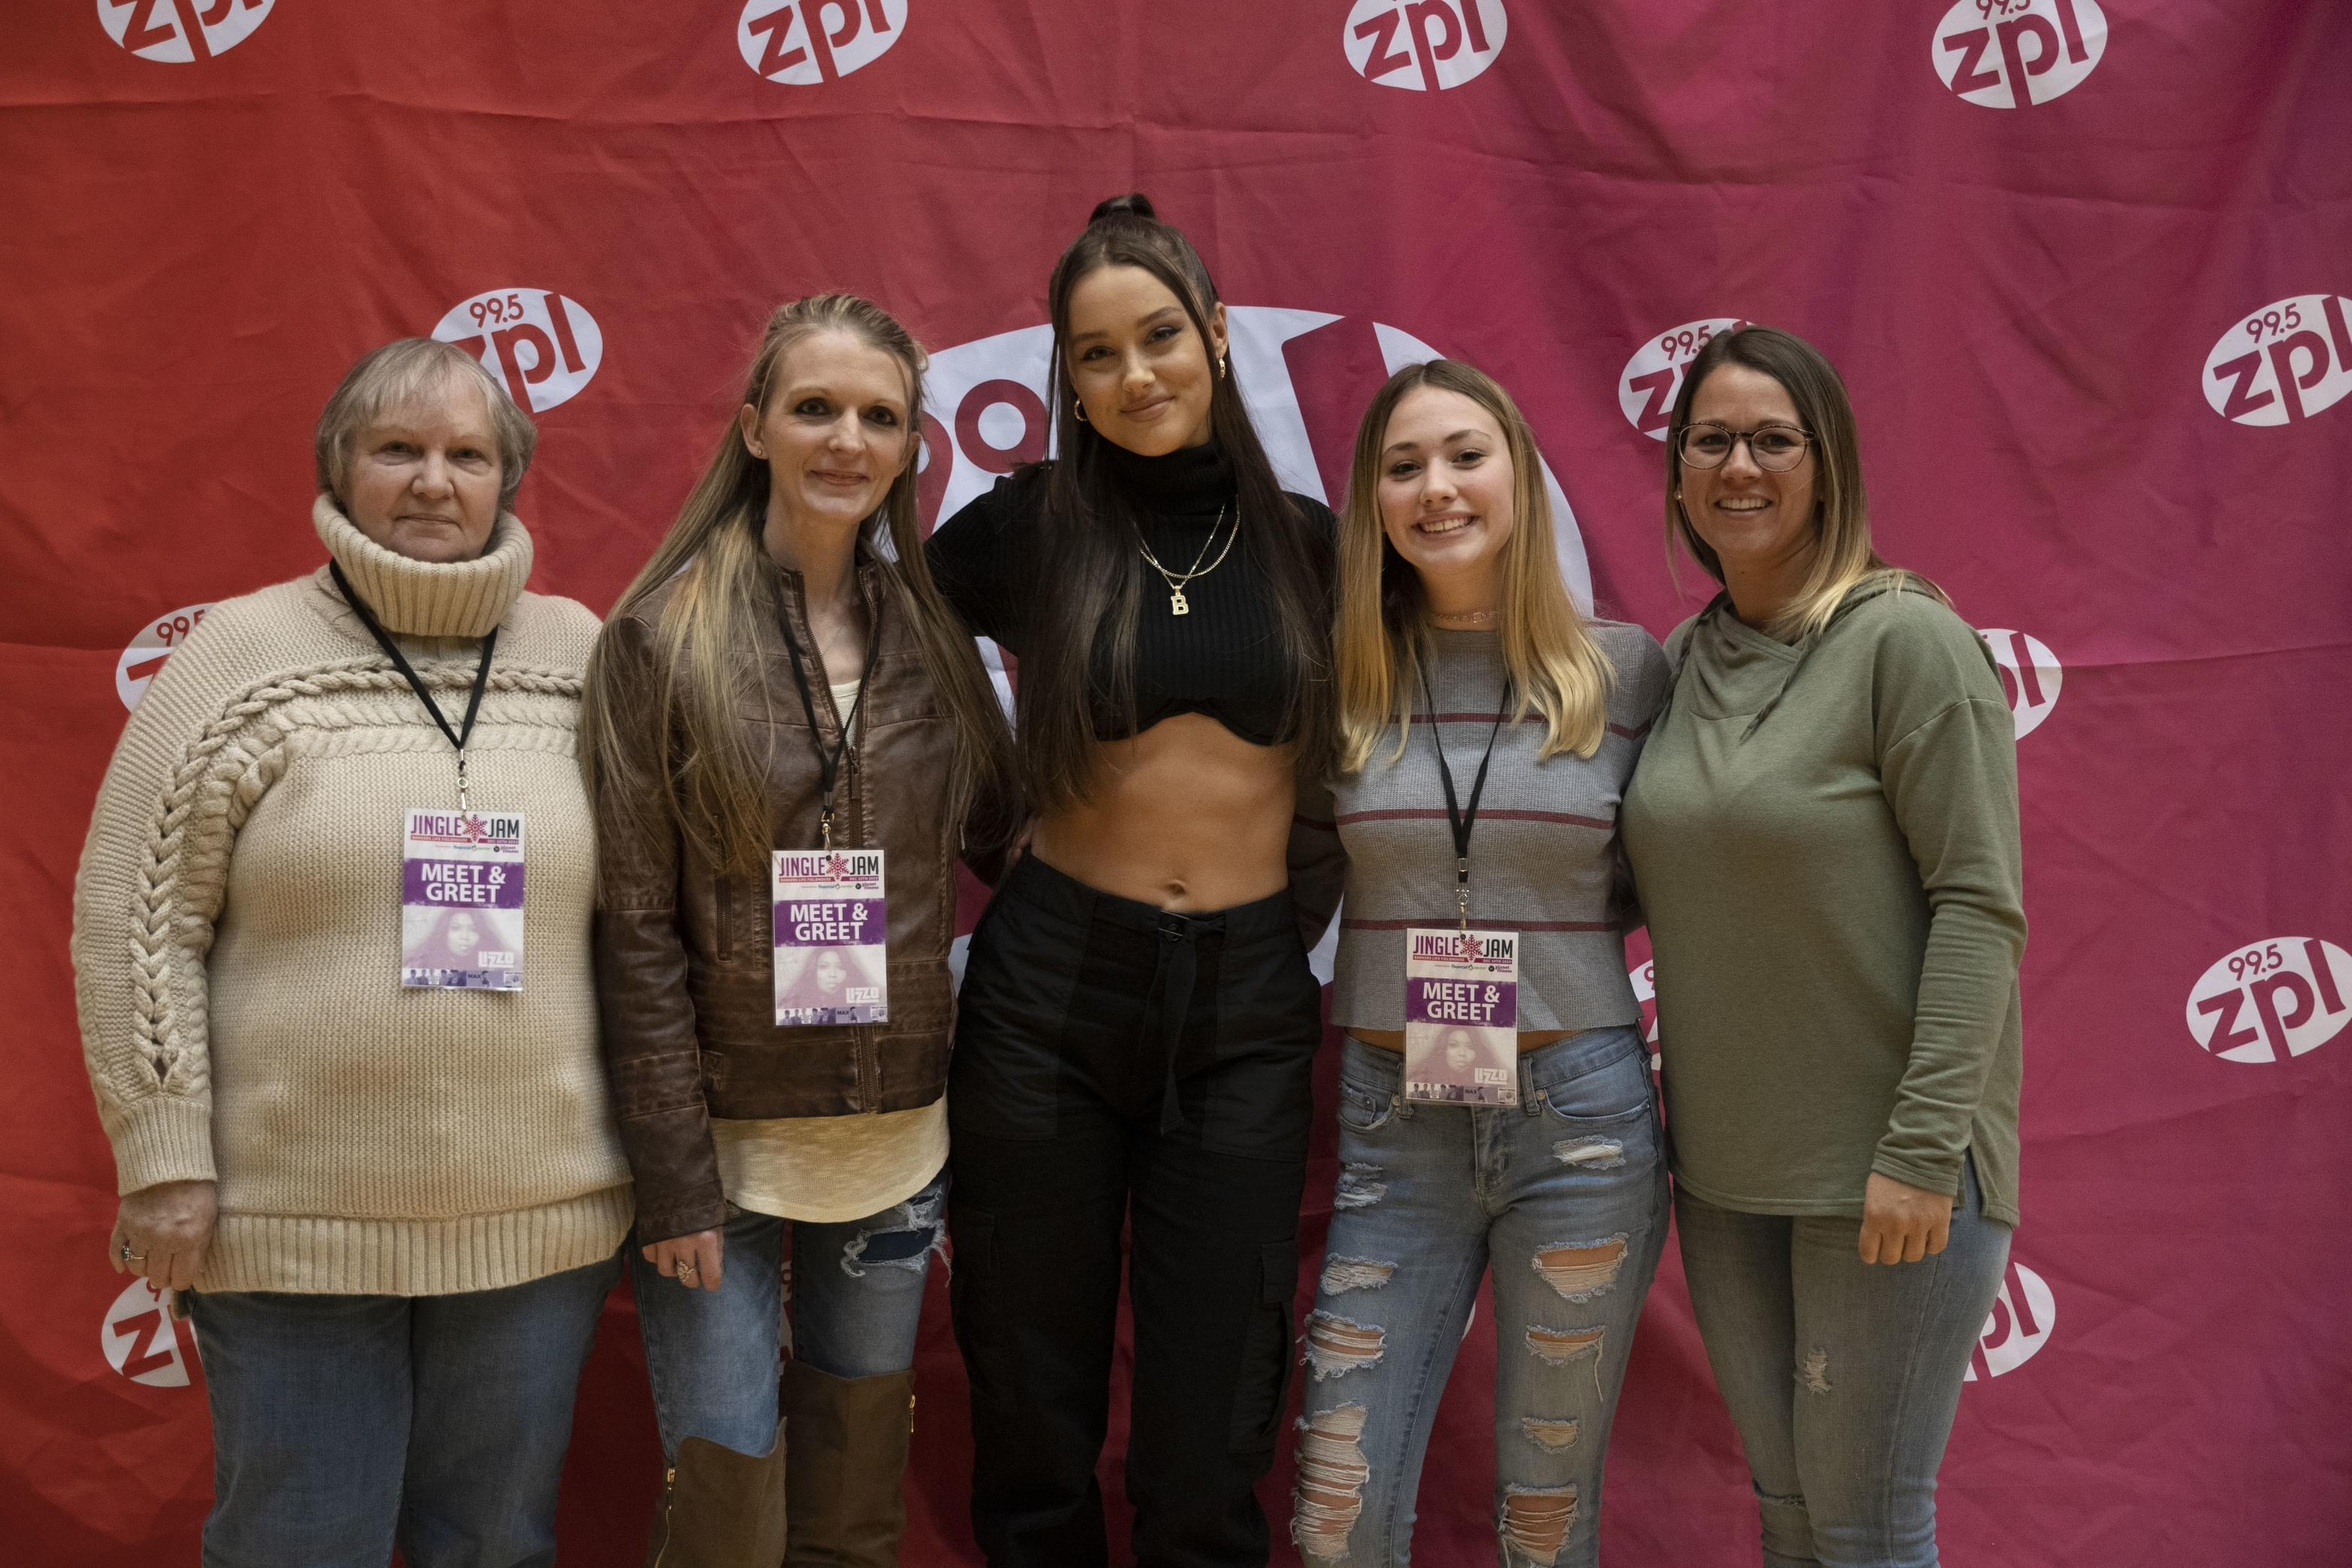 Bailey Bryan Meet & Greet at zpl Jingle Jam 2019!